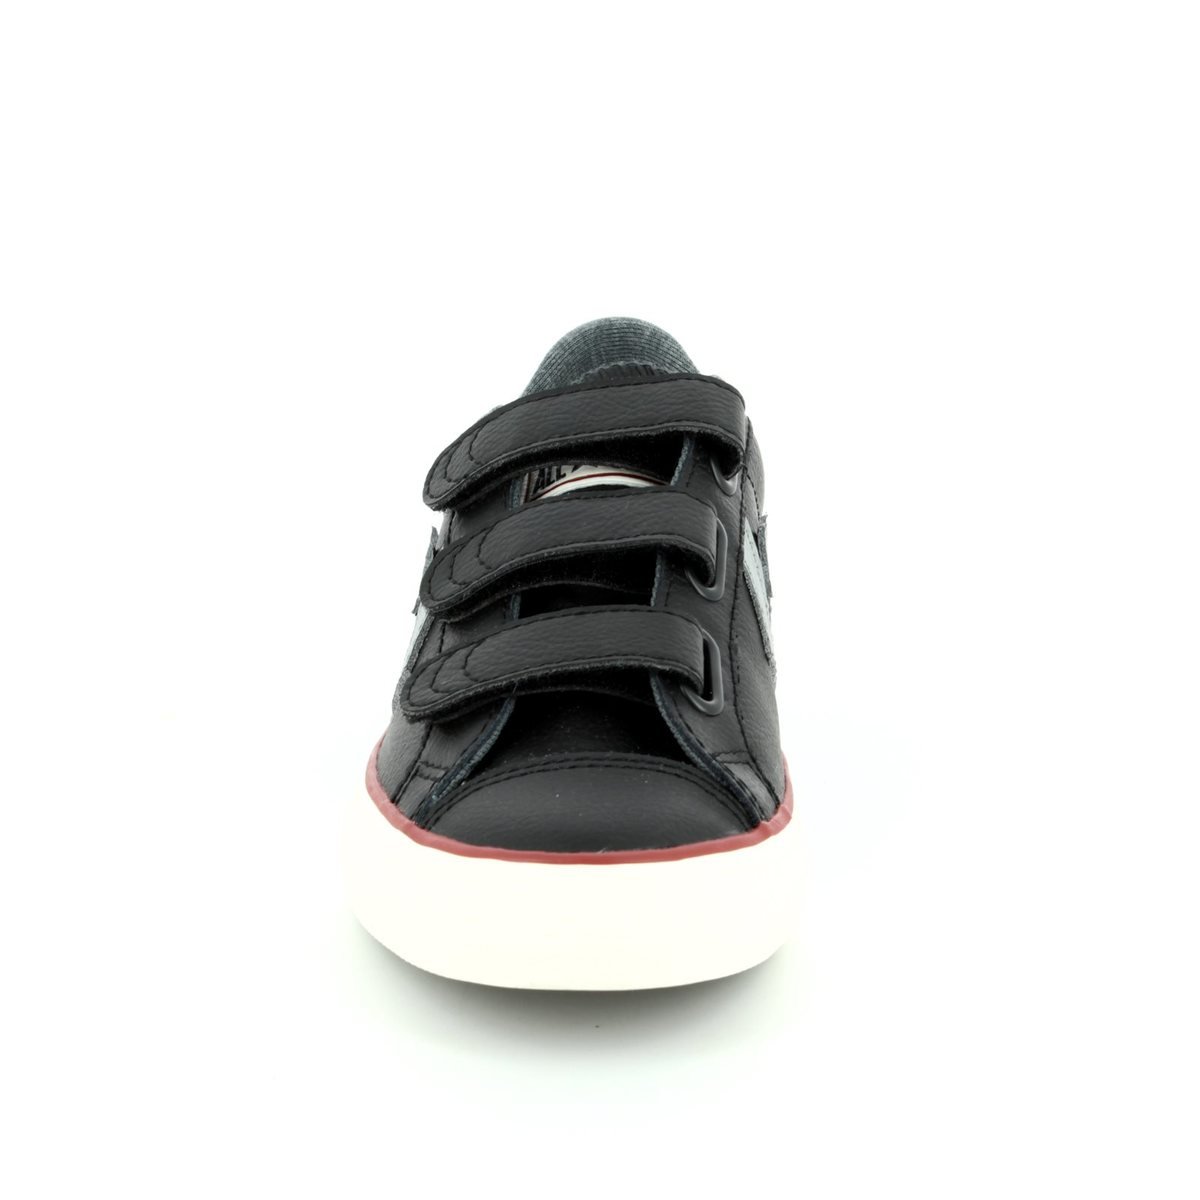 1daef21dd3d0 Converse Trainers - Black - 658155C 001 STAR PLAYER EV 3V OX Velcro